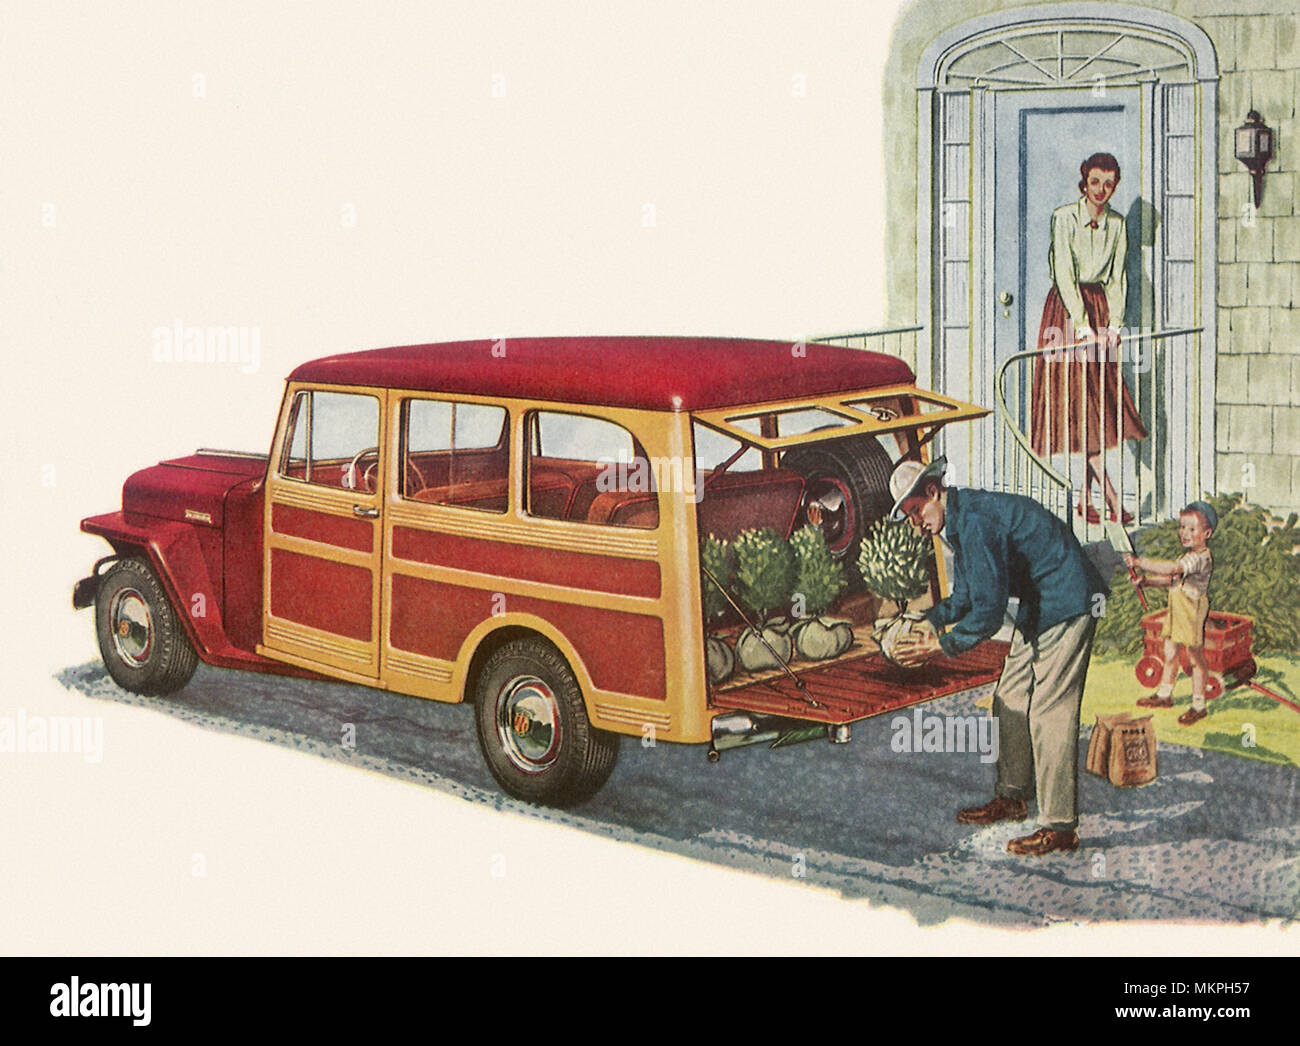 Jeep Willys Stock Photos Images Page 3 Alamy 1941 Station Wagon 1949 Overland Image